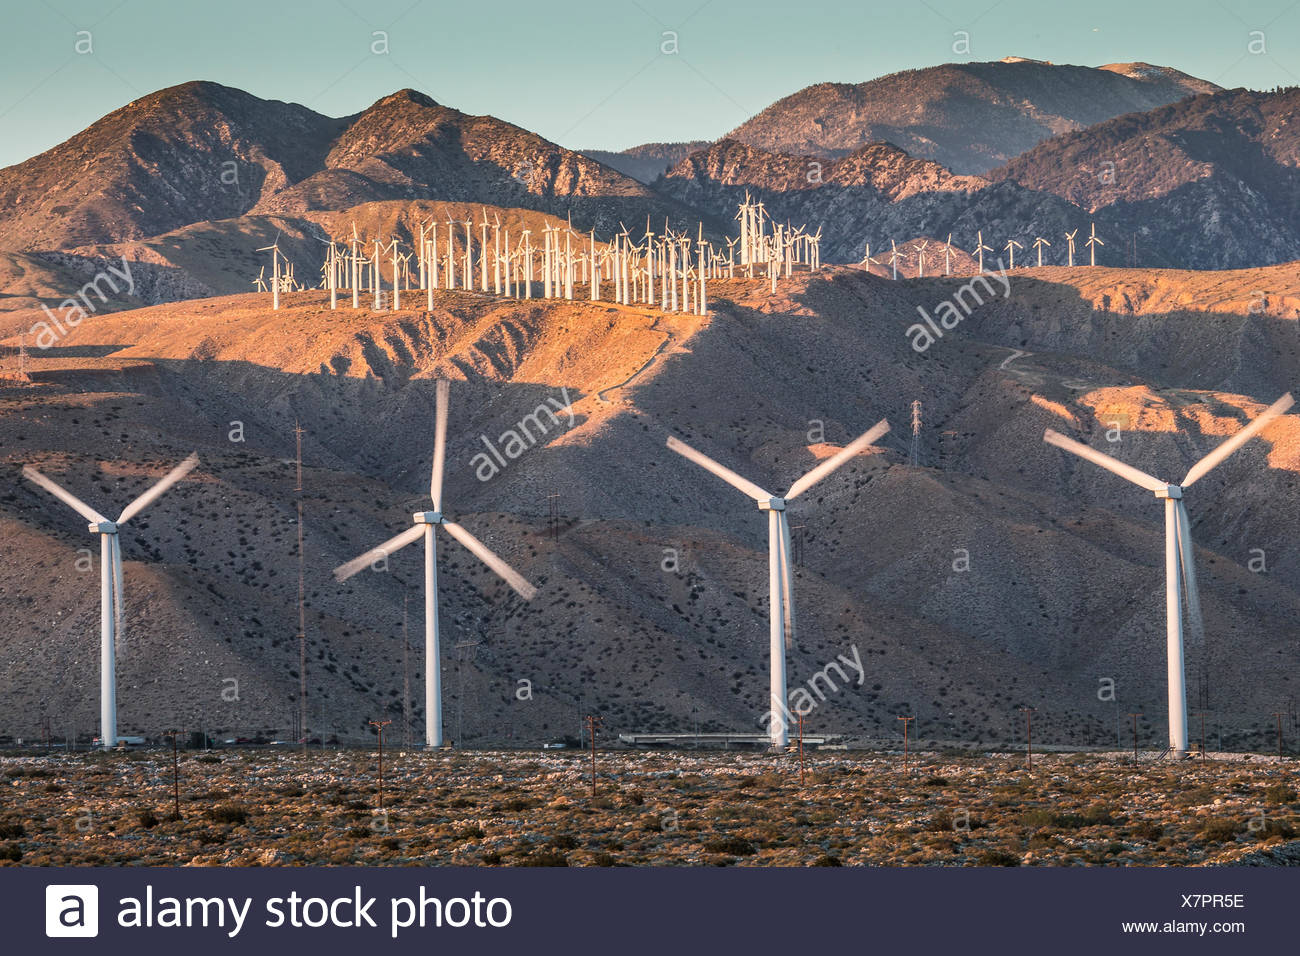 A few of the more than 3,000 wind turbines at the San Gorgonio Pass Wind Farm outside Palm Springs. The facility was developed beginning in the 1980s, and is one of three wind farms in the state. At bottom middle are vehicles on Interstate 10. - Stock Image